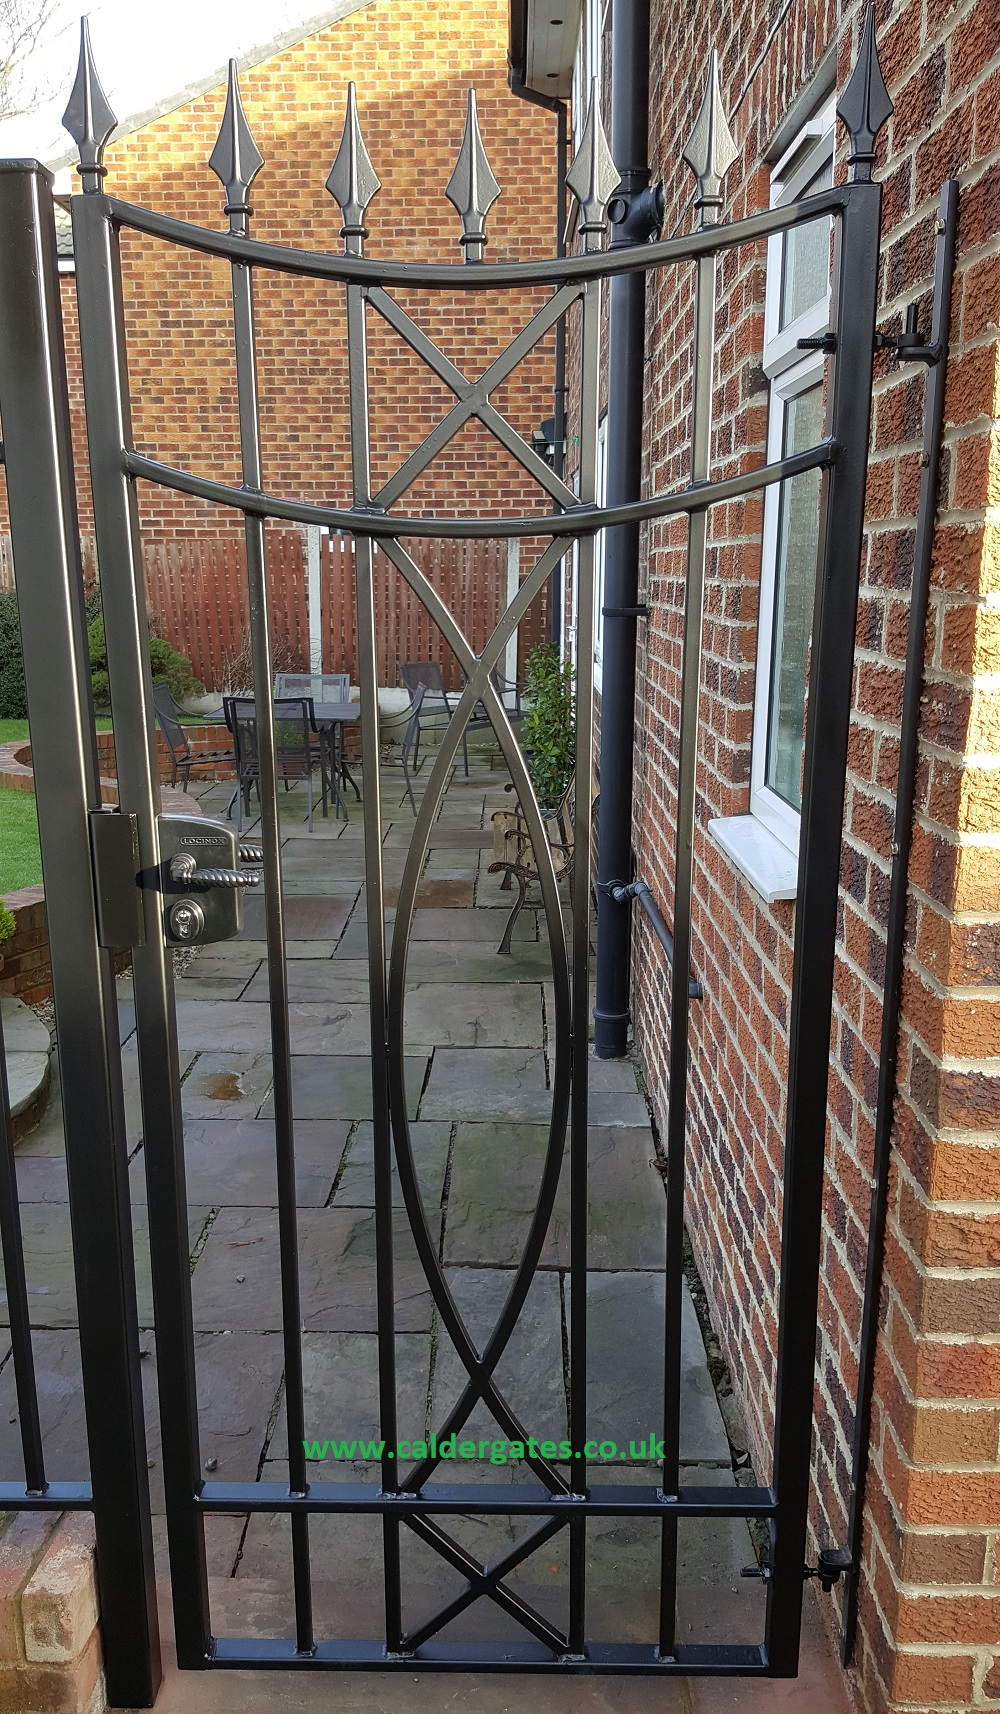 Modern metal gates with lock